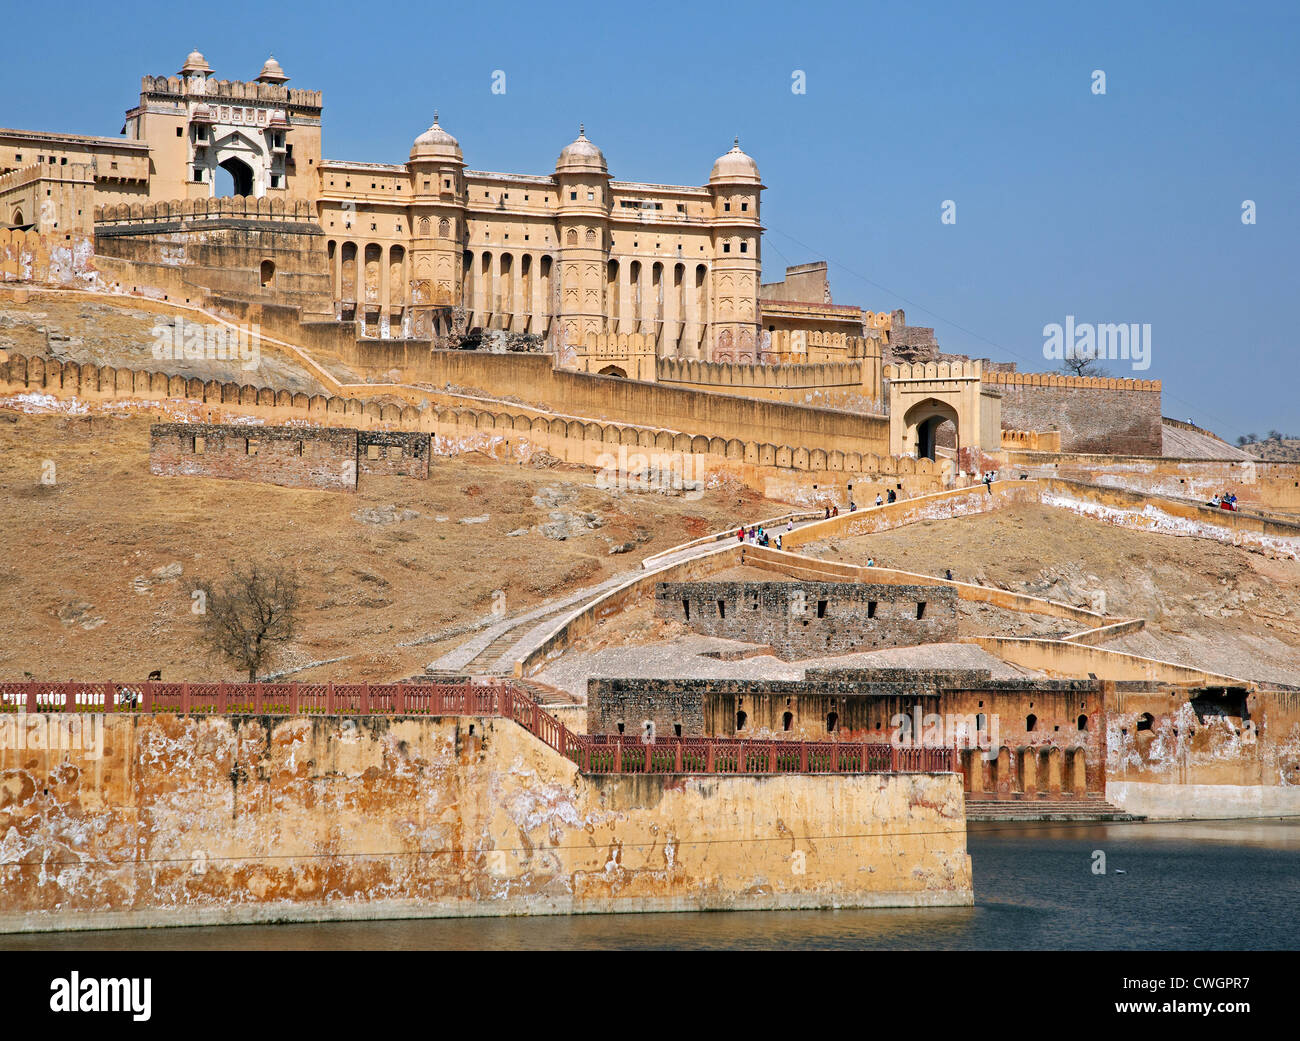 Amer Fort / Amber Fort, palace in red sandstone at Amer near Jaipur, Rajasthan, India - Stock Image